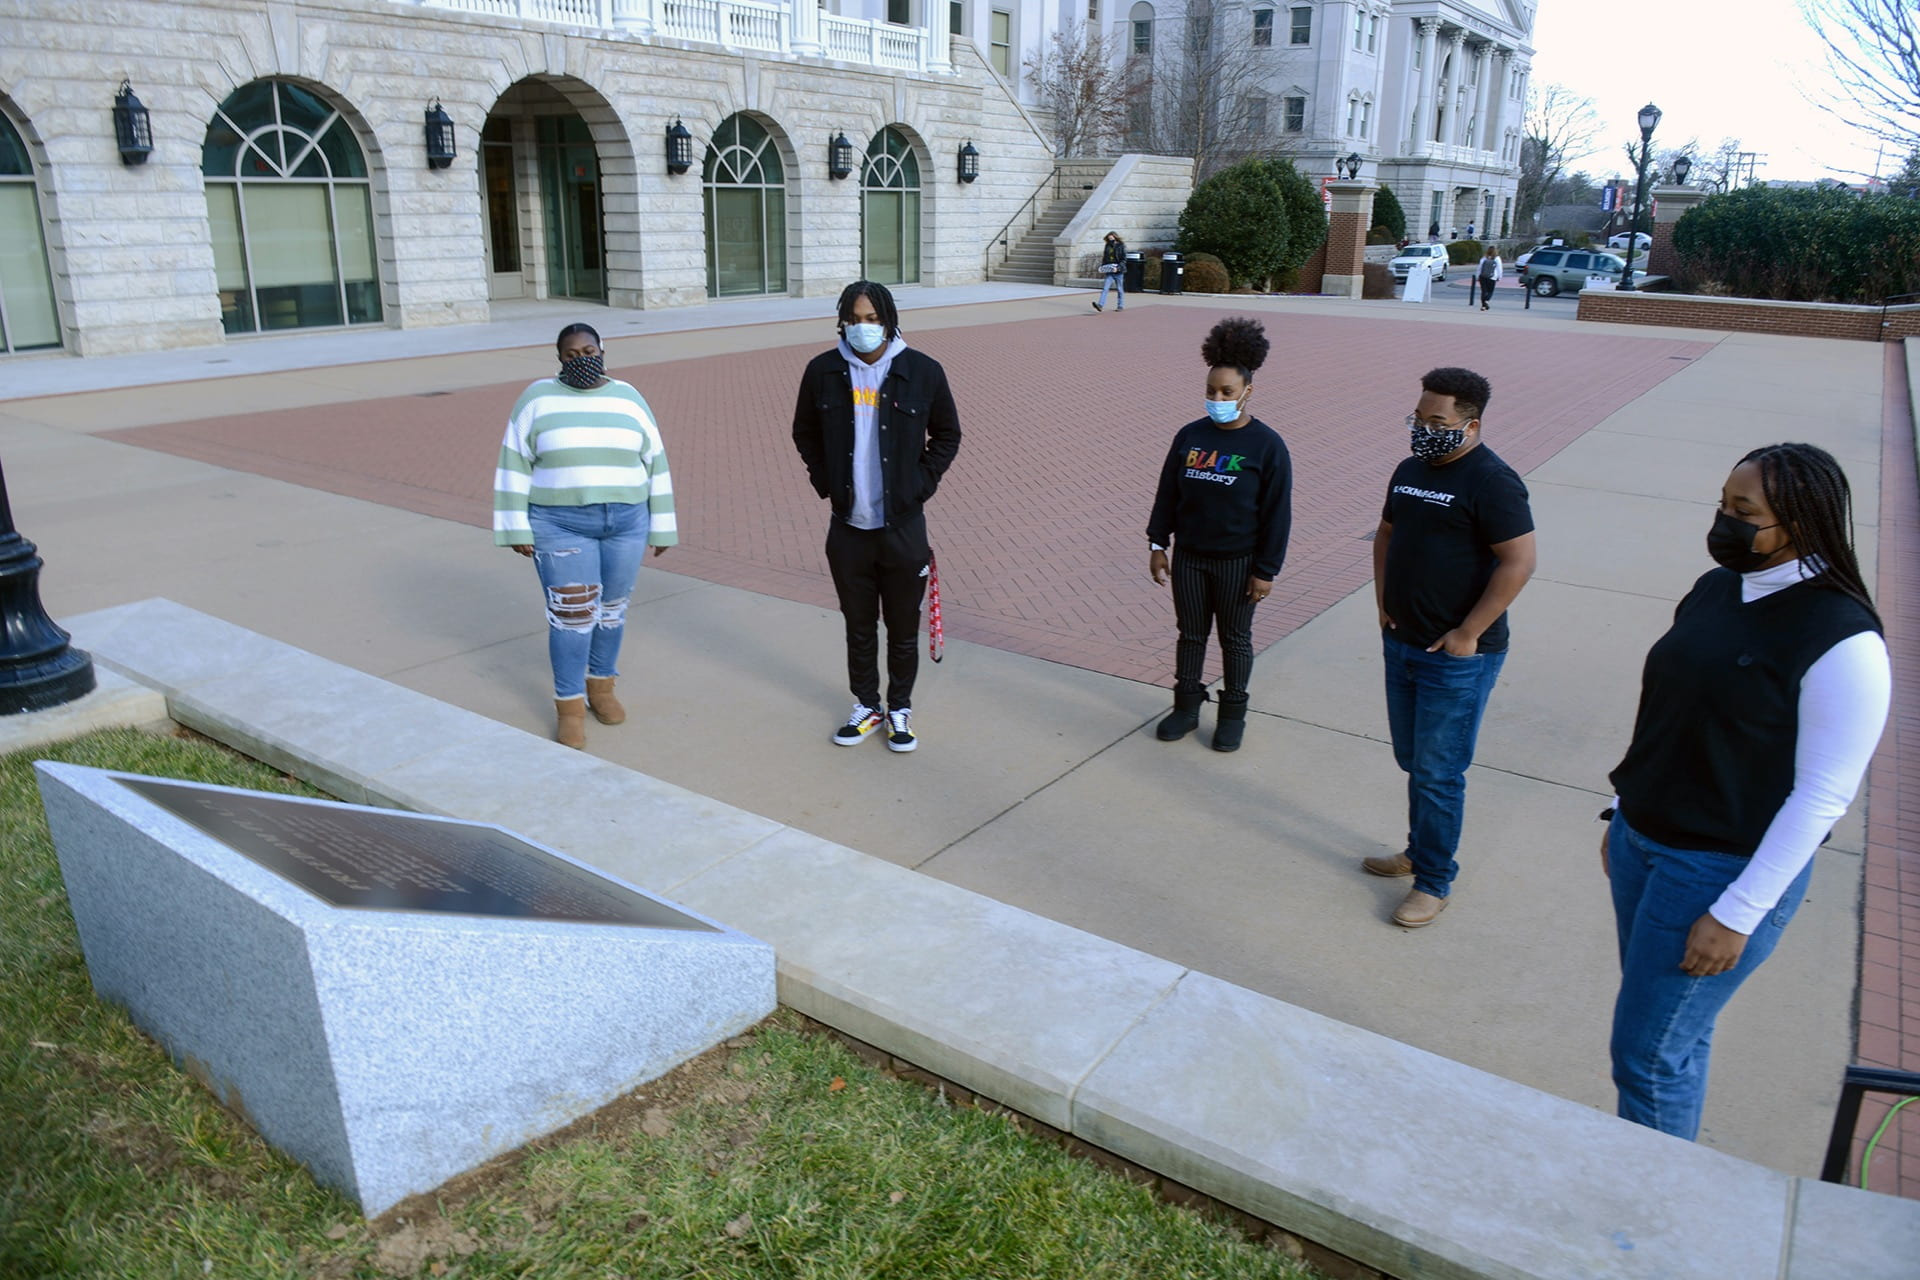 Black Student Association (BSA) Antionedra Maupin, Gilbert Dozier, Haily McGee, Marcus Knight and Jazmyn Pickstock pose for a picture in the newly unveiled Freedom Plaza at Belmont University in Nashville, Tennessee, January 18, 2021. Freedom Plaza was a announcement this morning in celebration of MLK day.